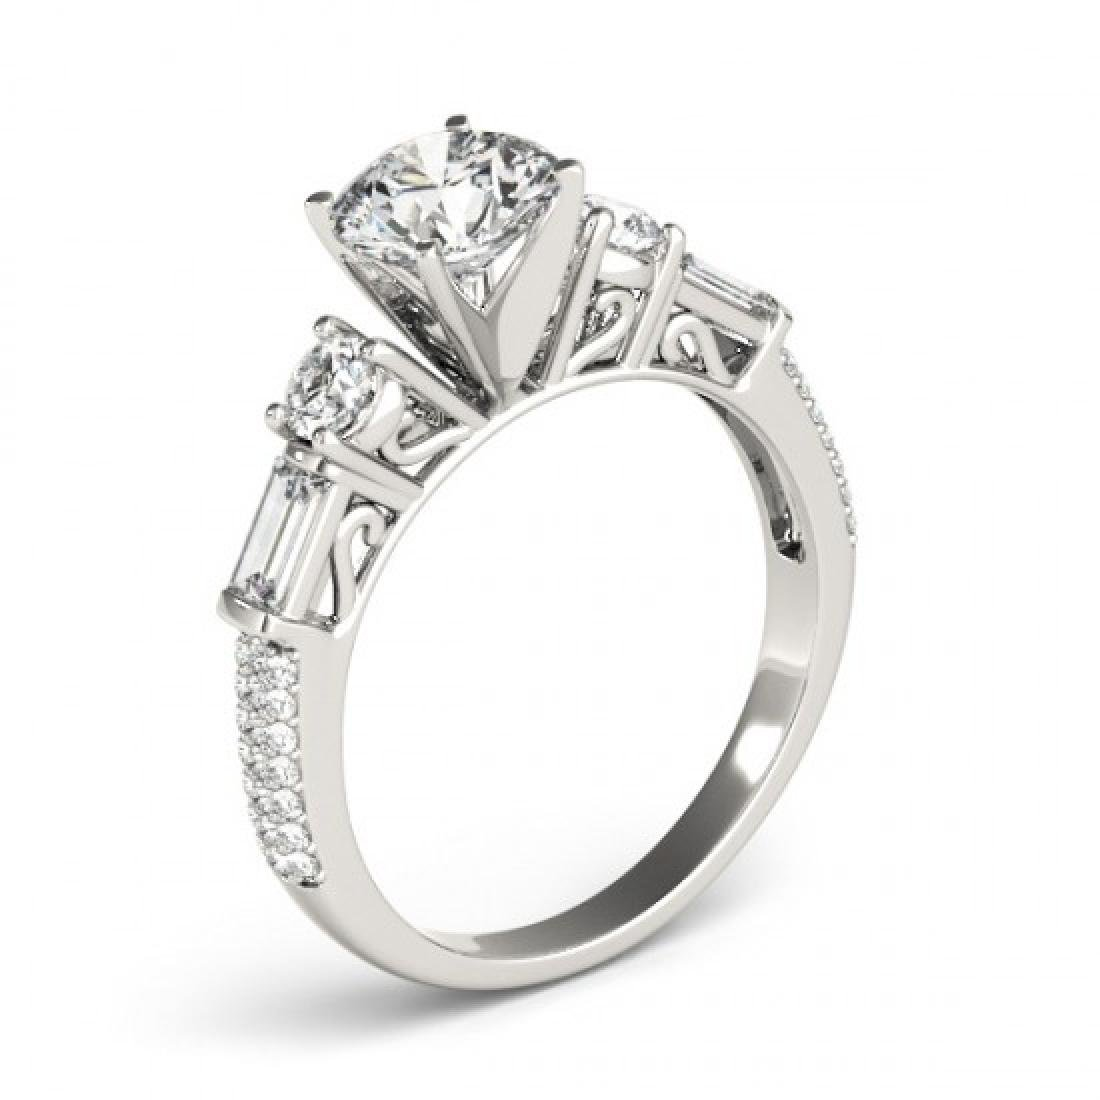 2.5 CTW Certified VS/SI Diamond Pave Solitaire Ring 14K - 3